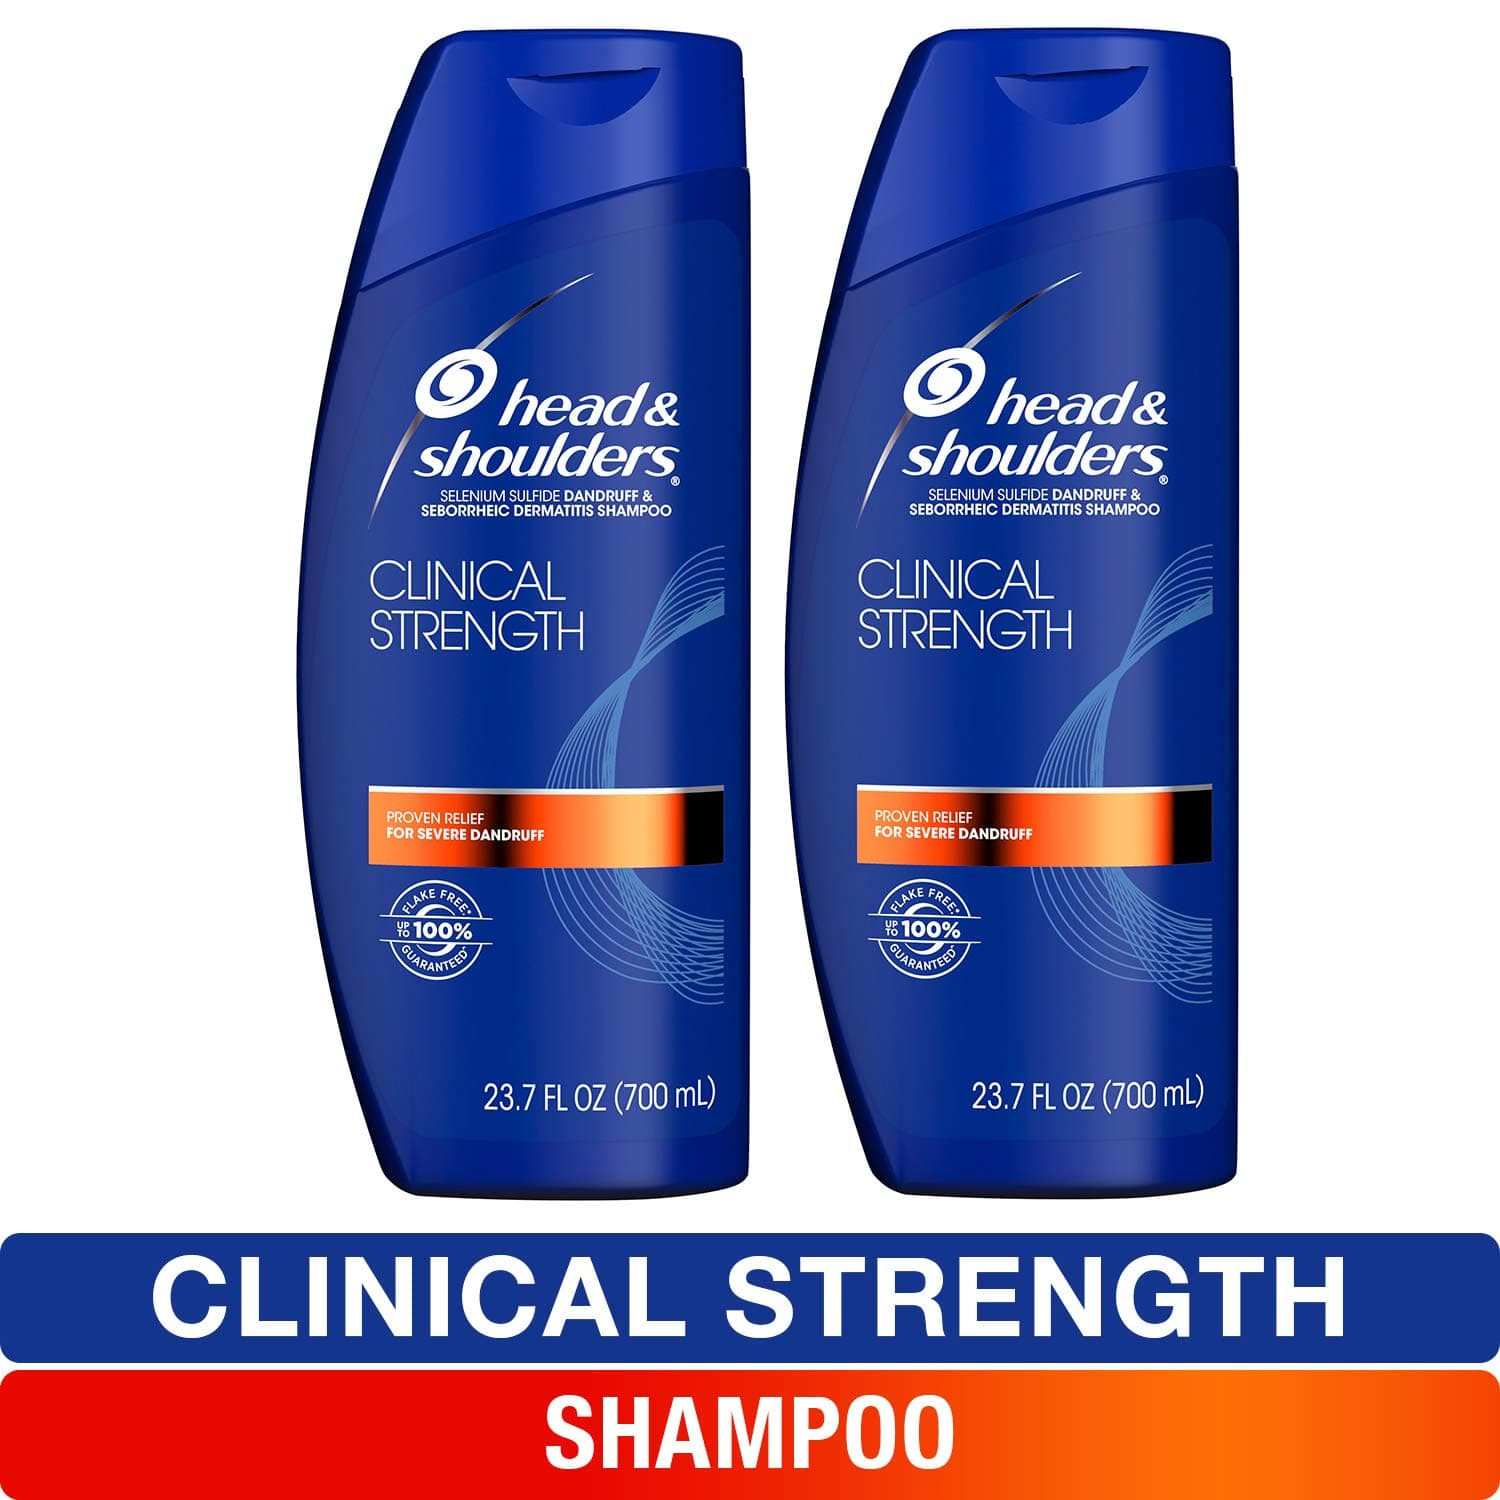 Amazon: Clip coupon for 30% off select Head & Shoulders items + free shipping w/ Prime